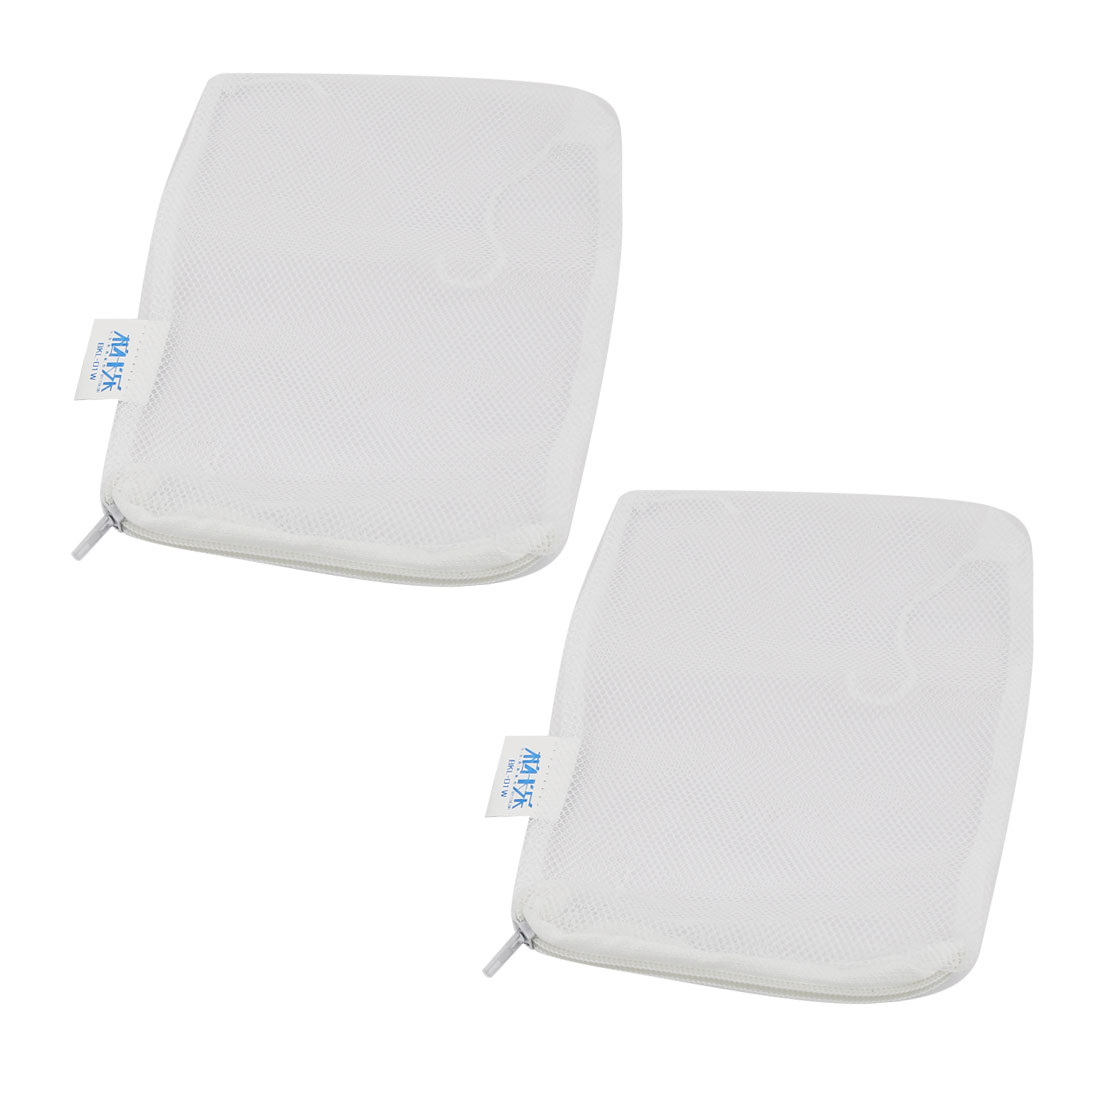 2Pcs White Nylon Zip up Meshy Net Filter Media Bags 16.5cm x 11.5cm